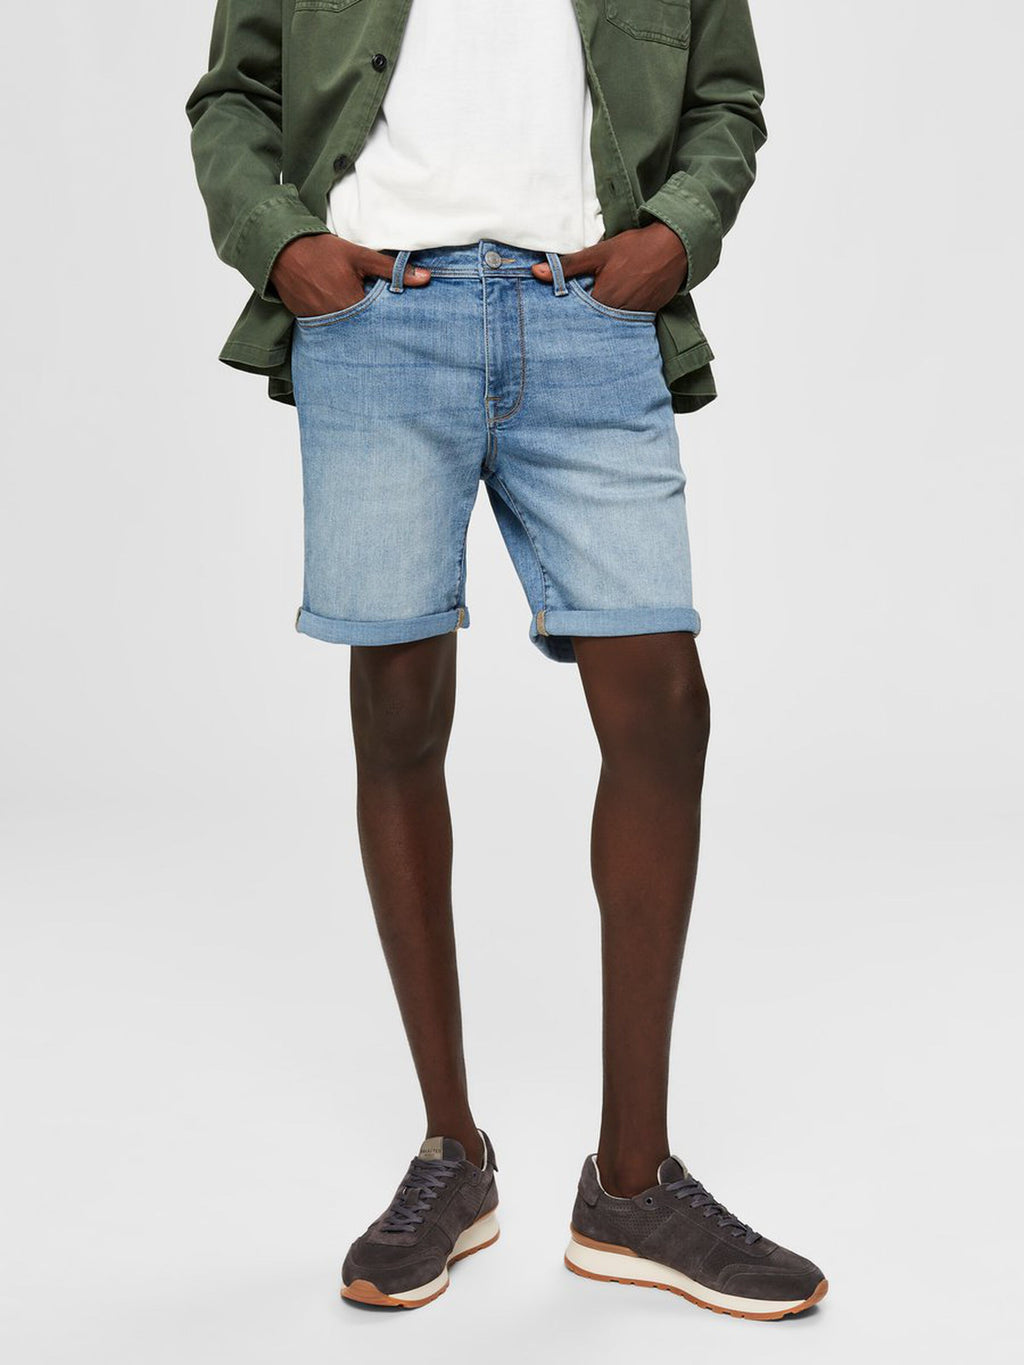 Selectedhomme alex 330 short light blue denim